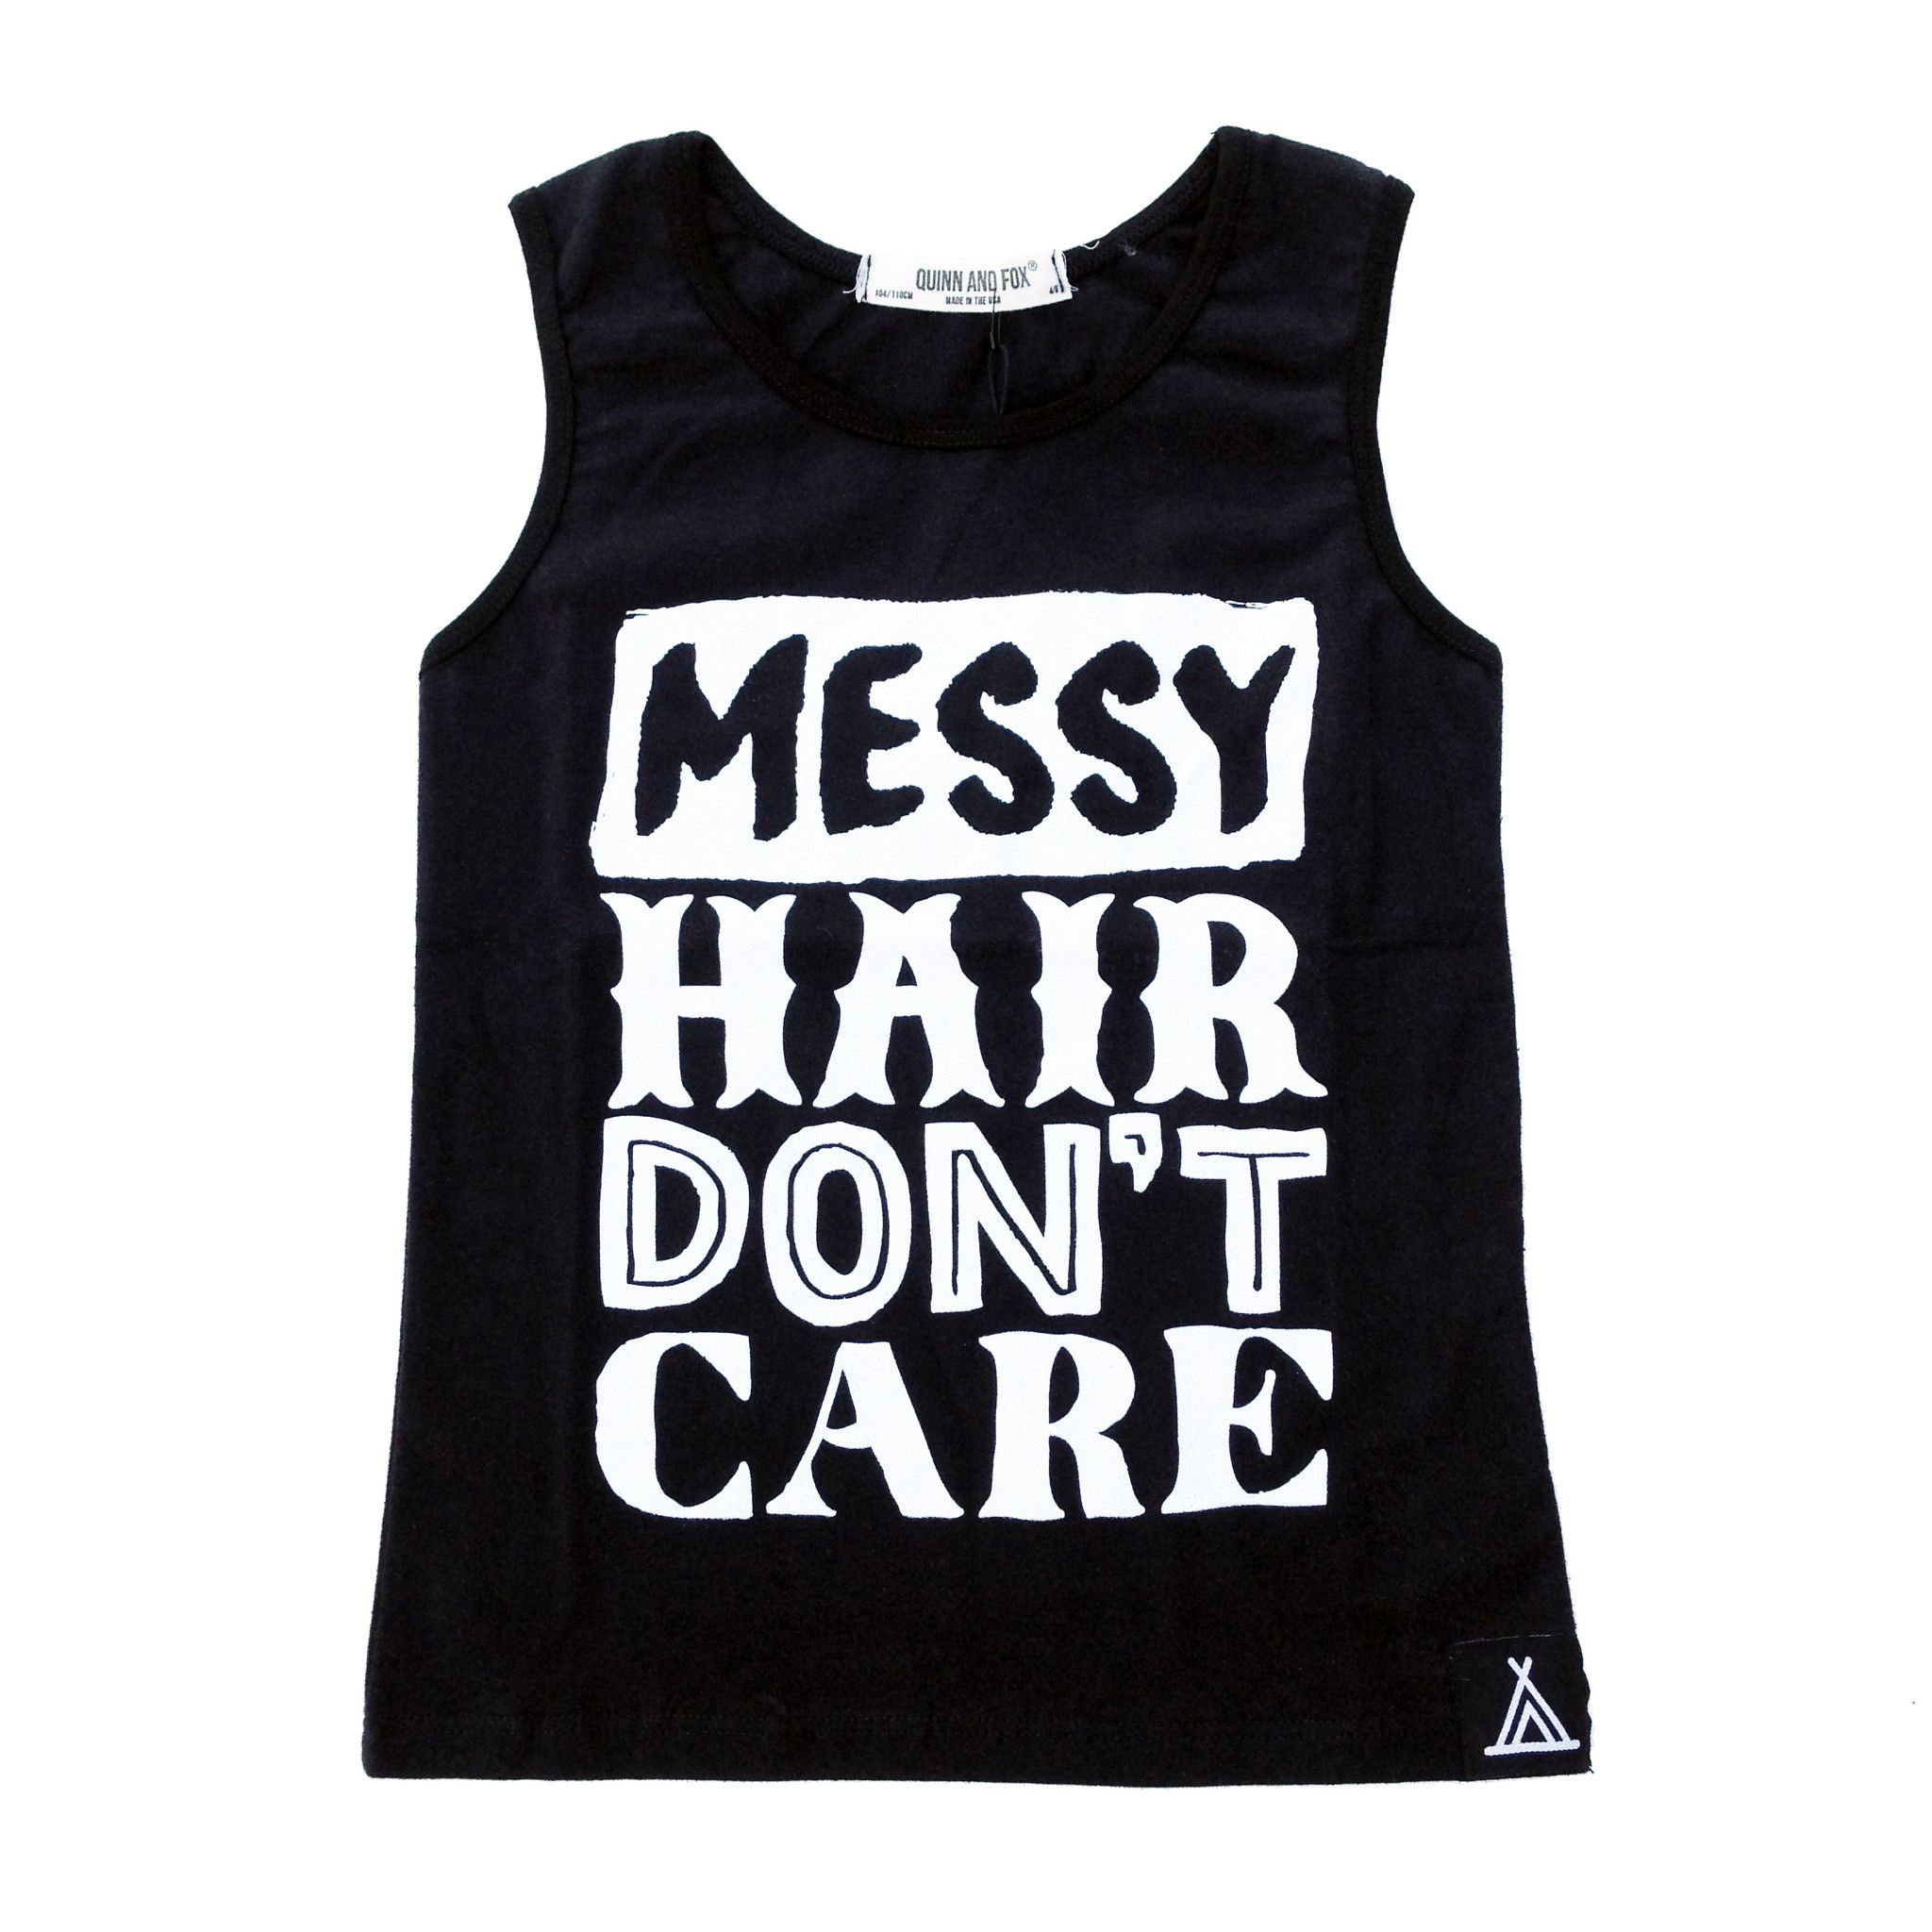 Messy hair dont care Tank from QUINN AND FOX Messy